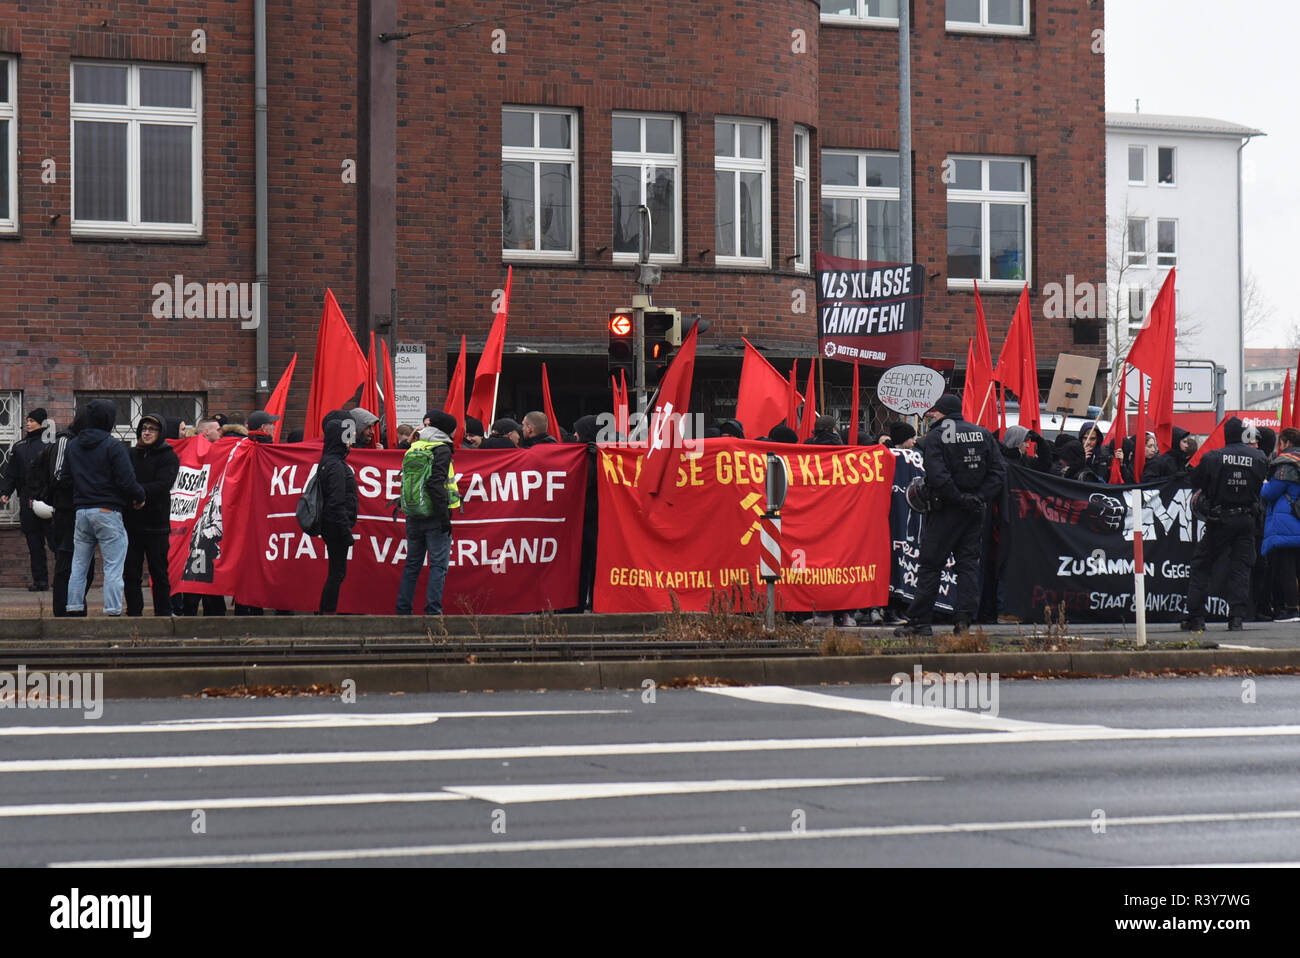 Magdeburg, Germany - November 24, 2018: In Magdeburg, 1000 supporters of a left-wing alliance demonstrated against stricter police laws in Germany. Participants in the demonstration, which lasted several hours, included anti-age groups, climate activists and trade union representatives. Credit: Mattis Kaminer/Alamy Live News - Stock Image